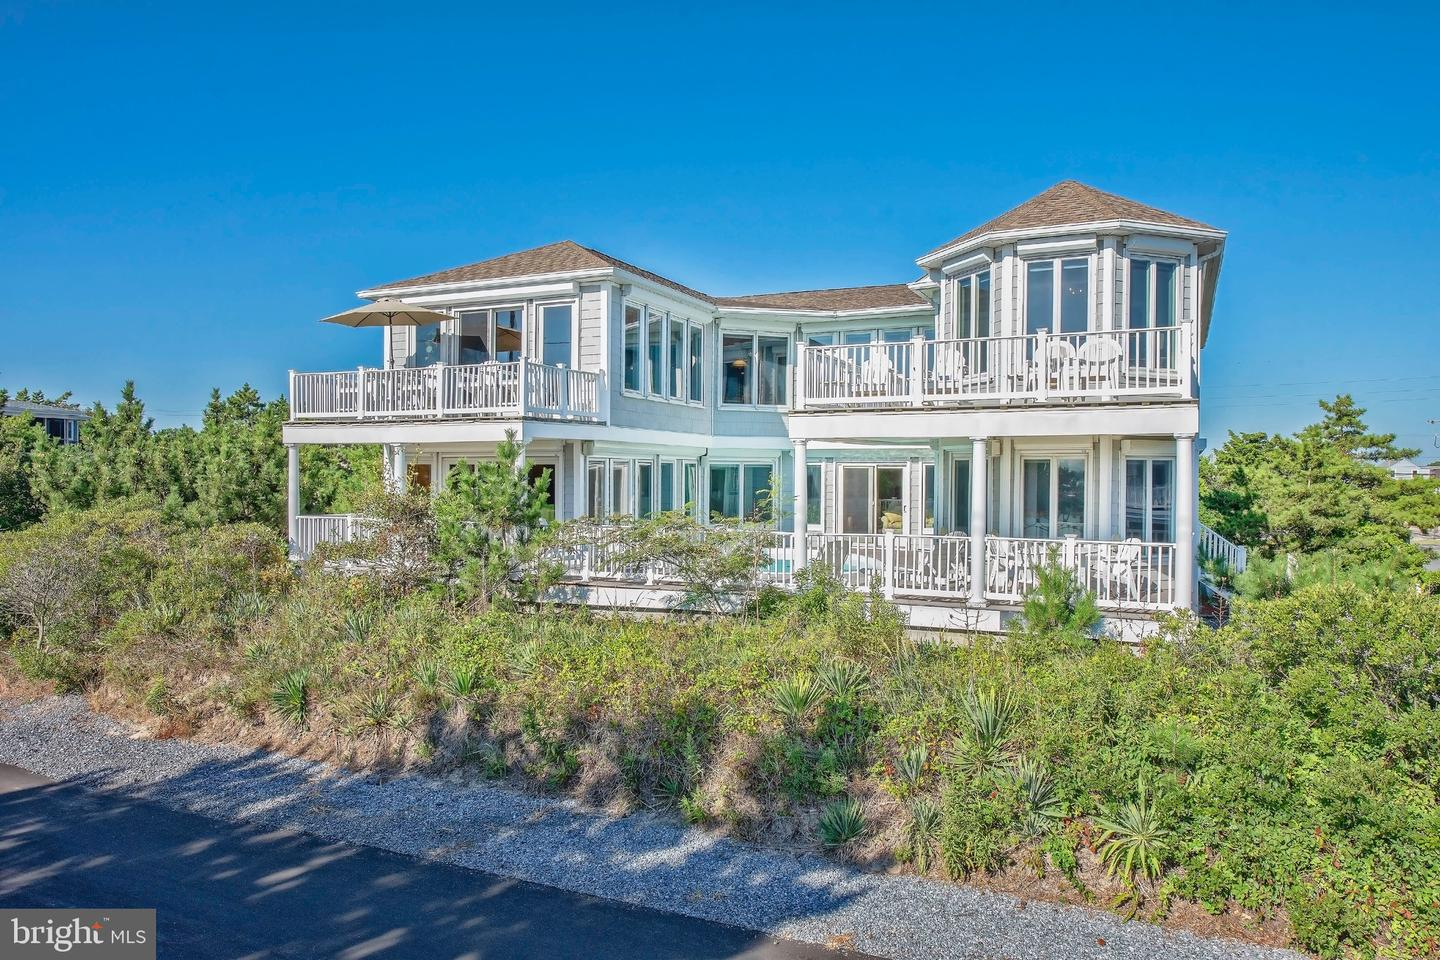 DESU147280-302007866327-2019-08-31-13-42-10 810 Bunting Ave | Fenwick Island, DE Real Estate For Sale | MLS# Desu147280  - Jack Lingo REALTOR